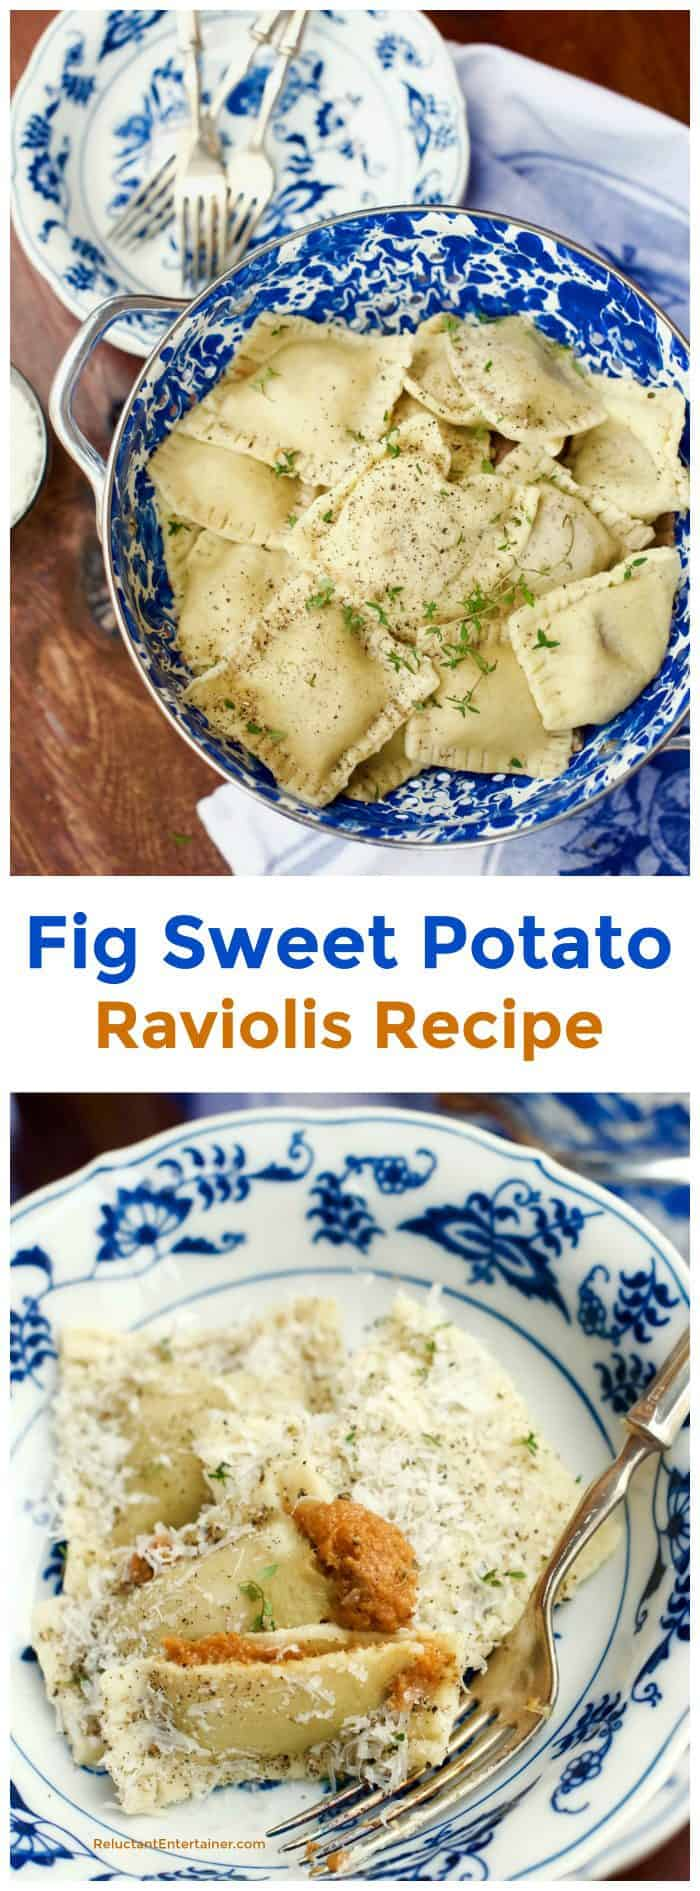 Fig Sweet Potato Raviolis Recipe